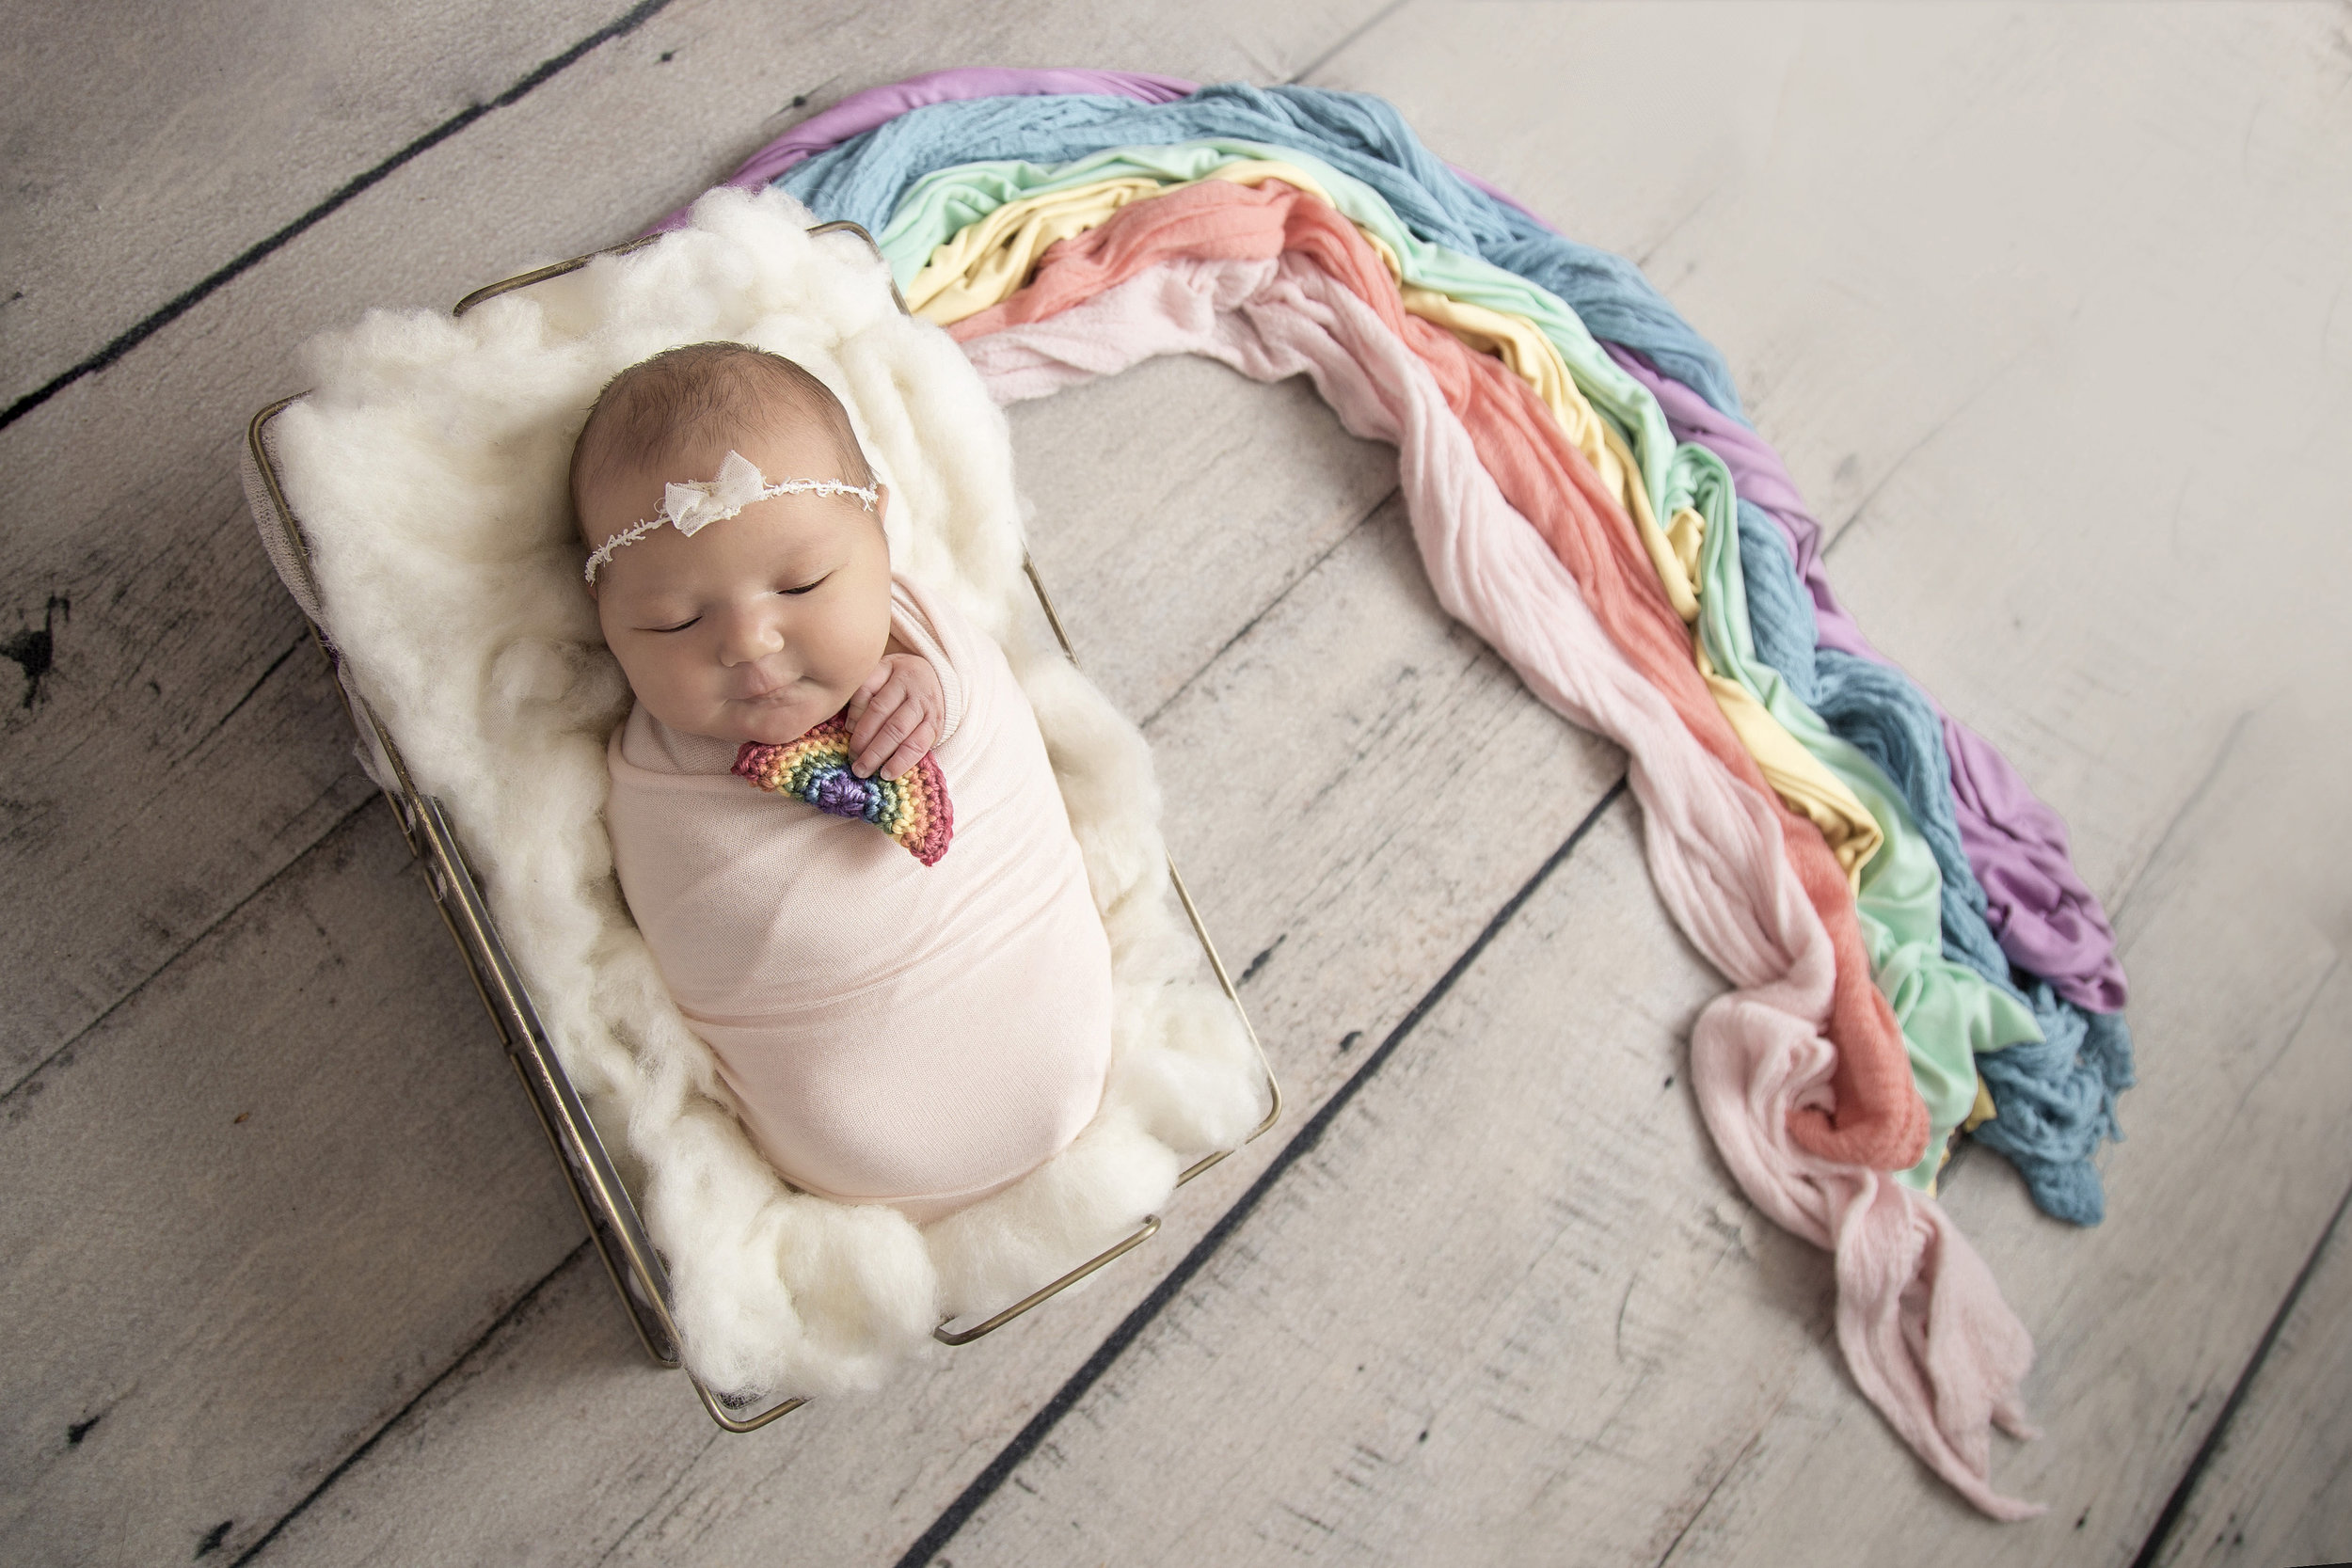 As a follow up to Stephanie's maternity image that made the reel, I am also including her sweet rainbow baby girl.